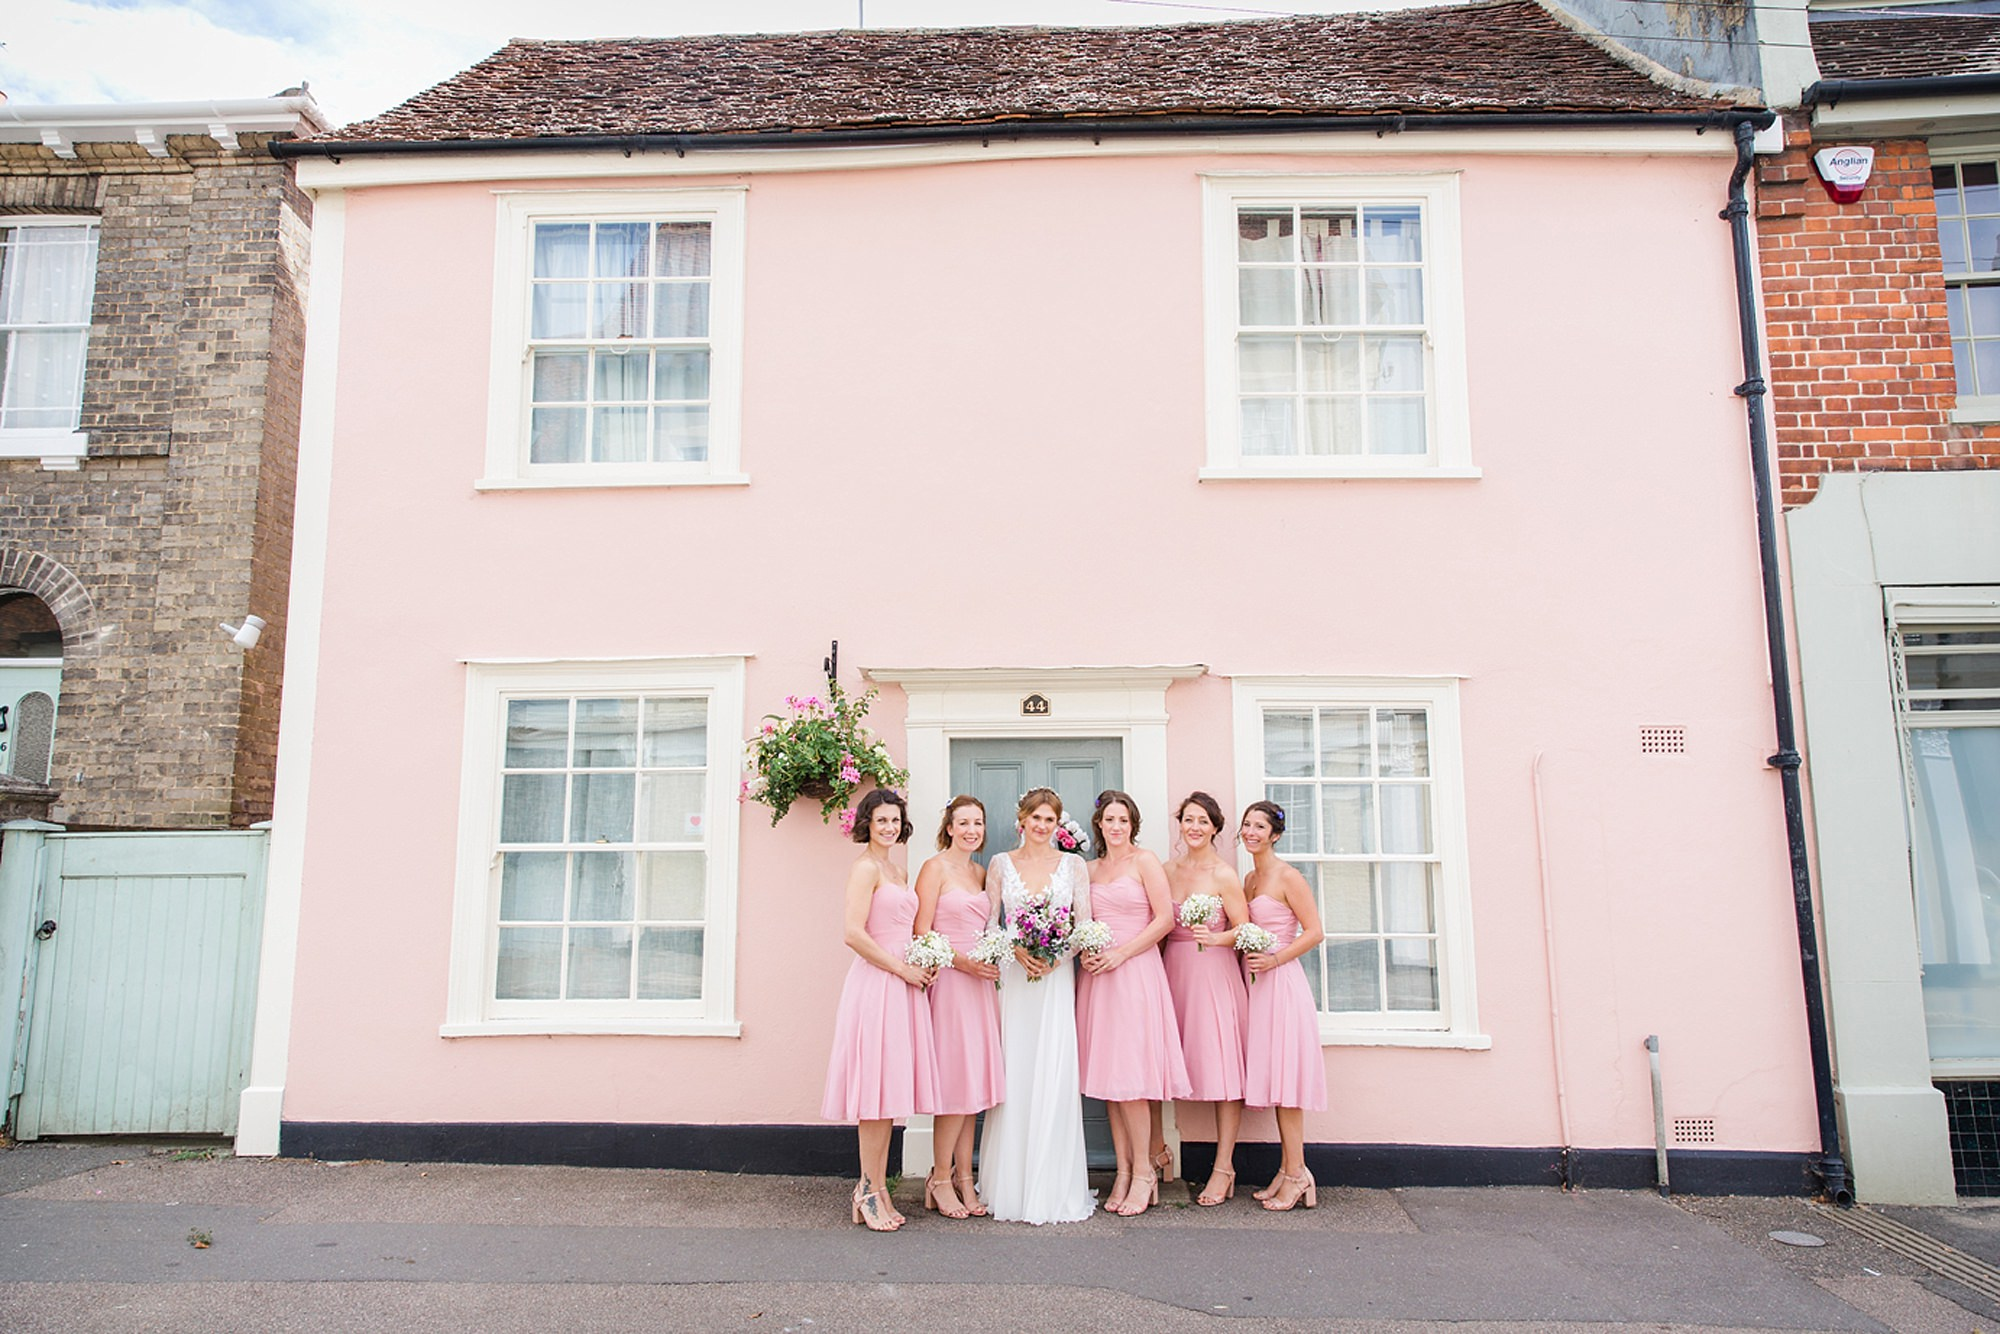 Marks Hall Estate wedding photography bride and bridesmaids outside pink house